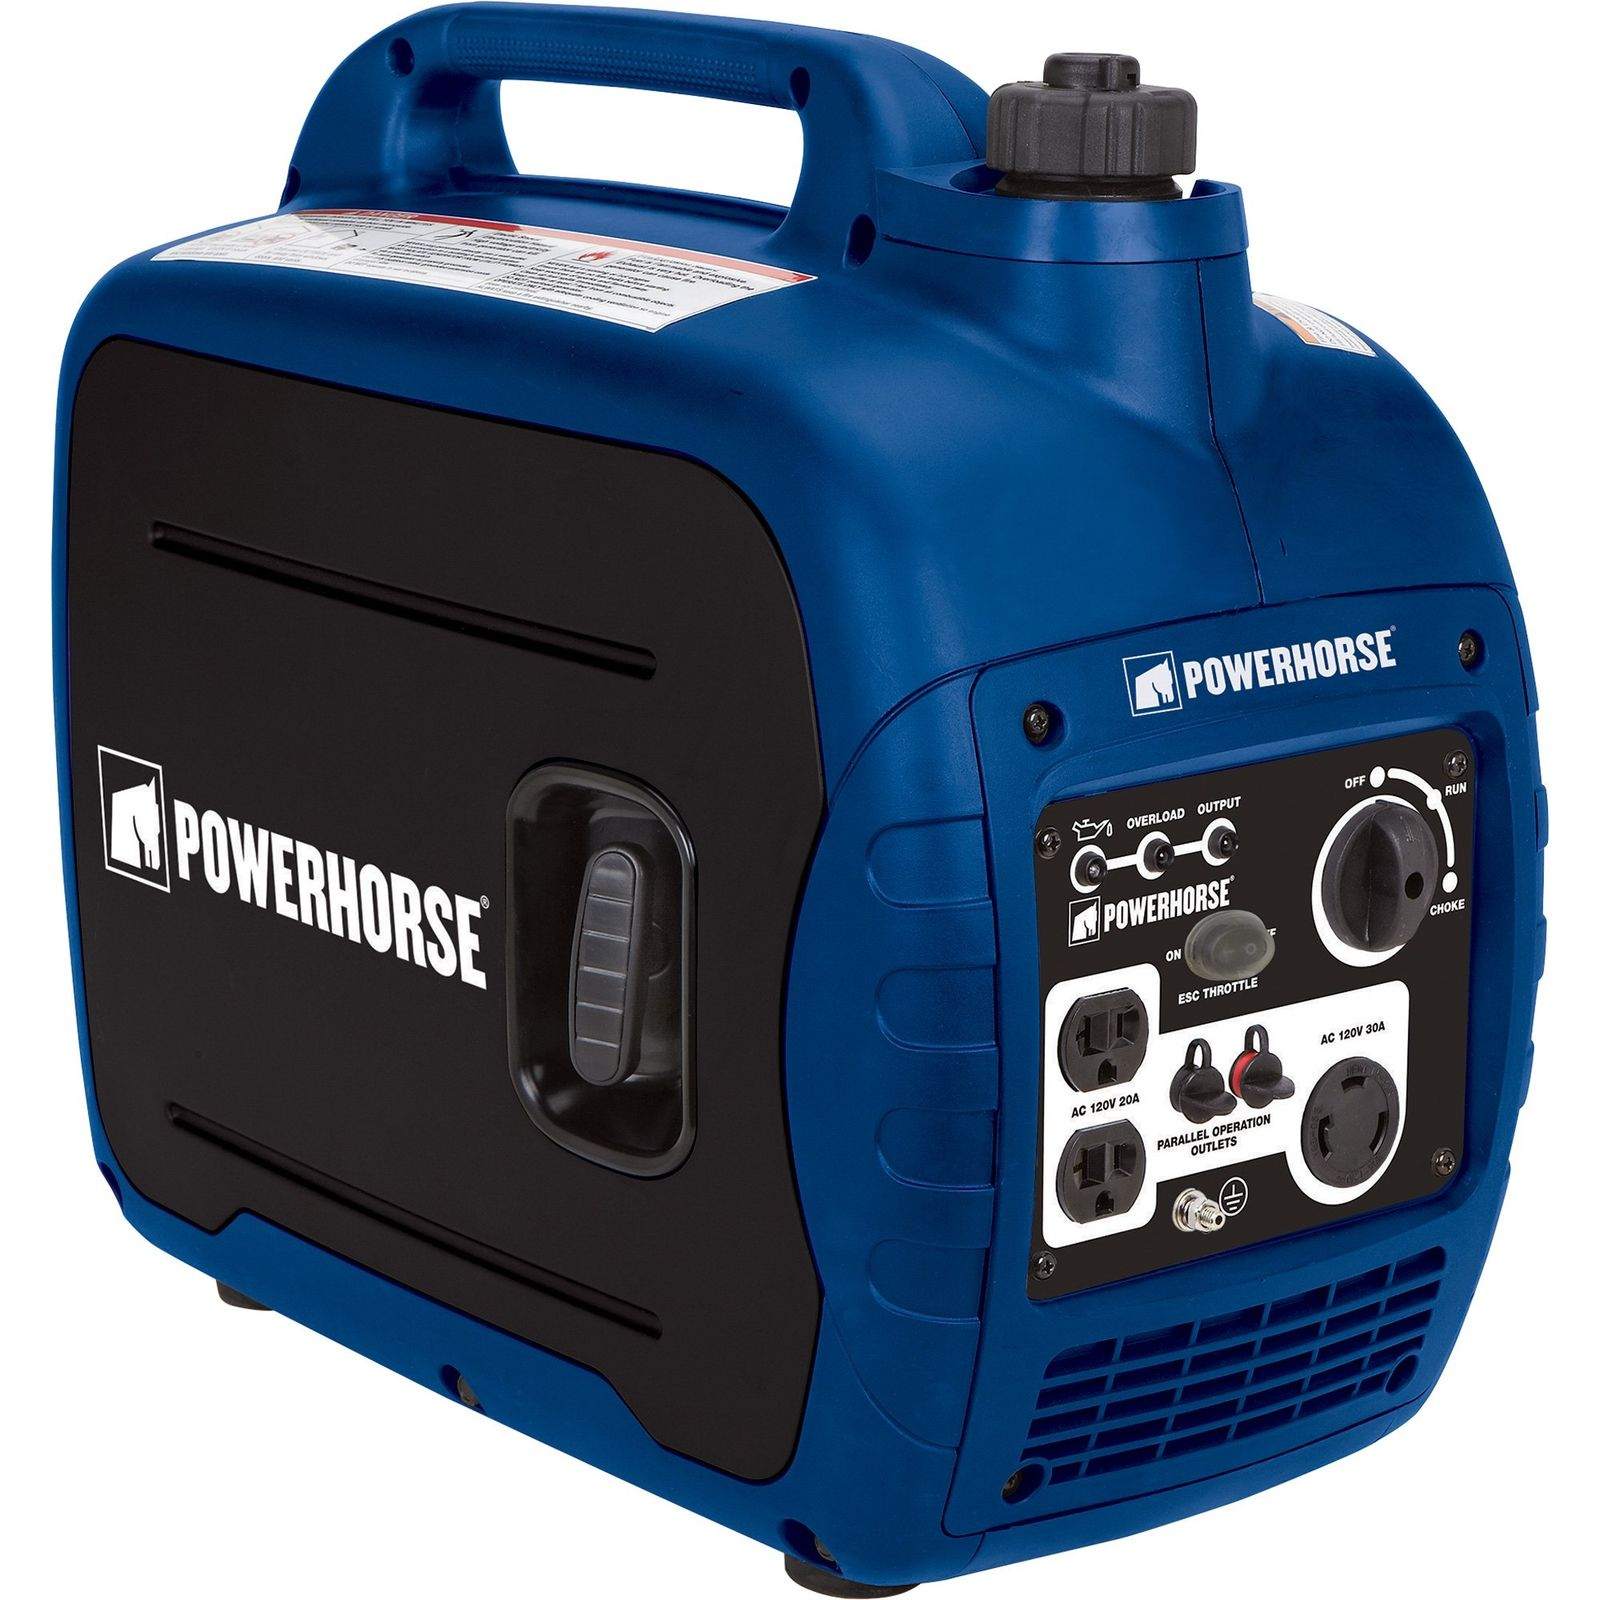 Quietest Portable Generator Reviews 2019 Best Small And Quiet Models